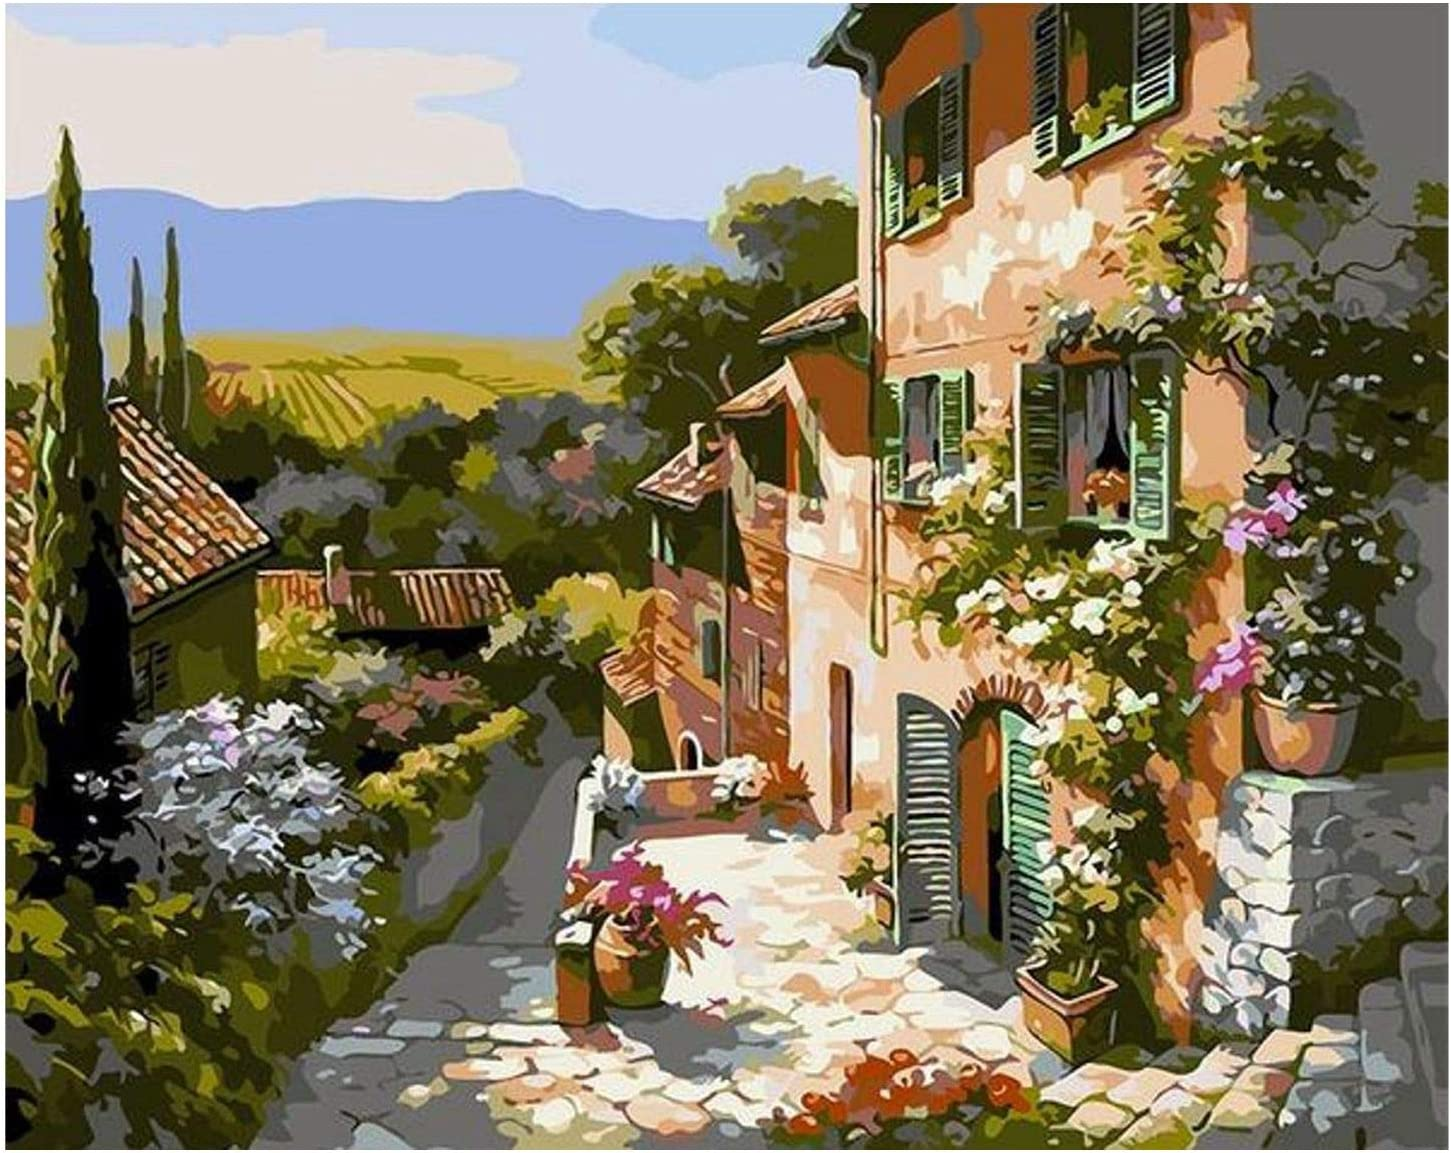 Fauge Tuscany Street Landscape Paint By Number Kit Acrylic Oil Painting for Kids /& Adults 16X20Inch